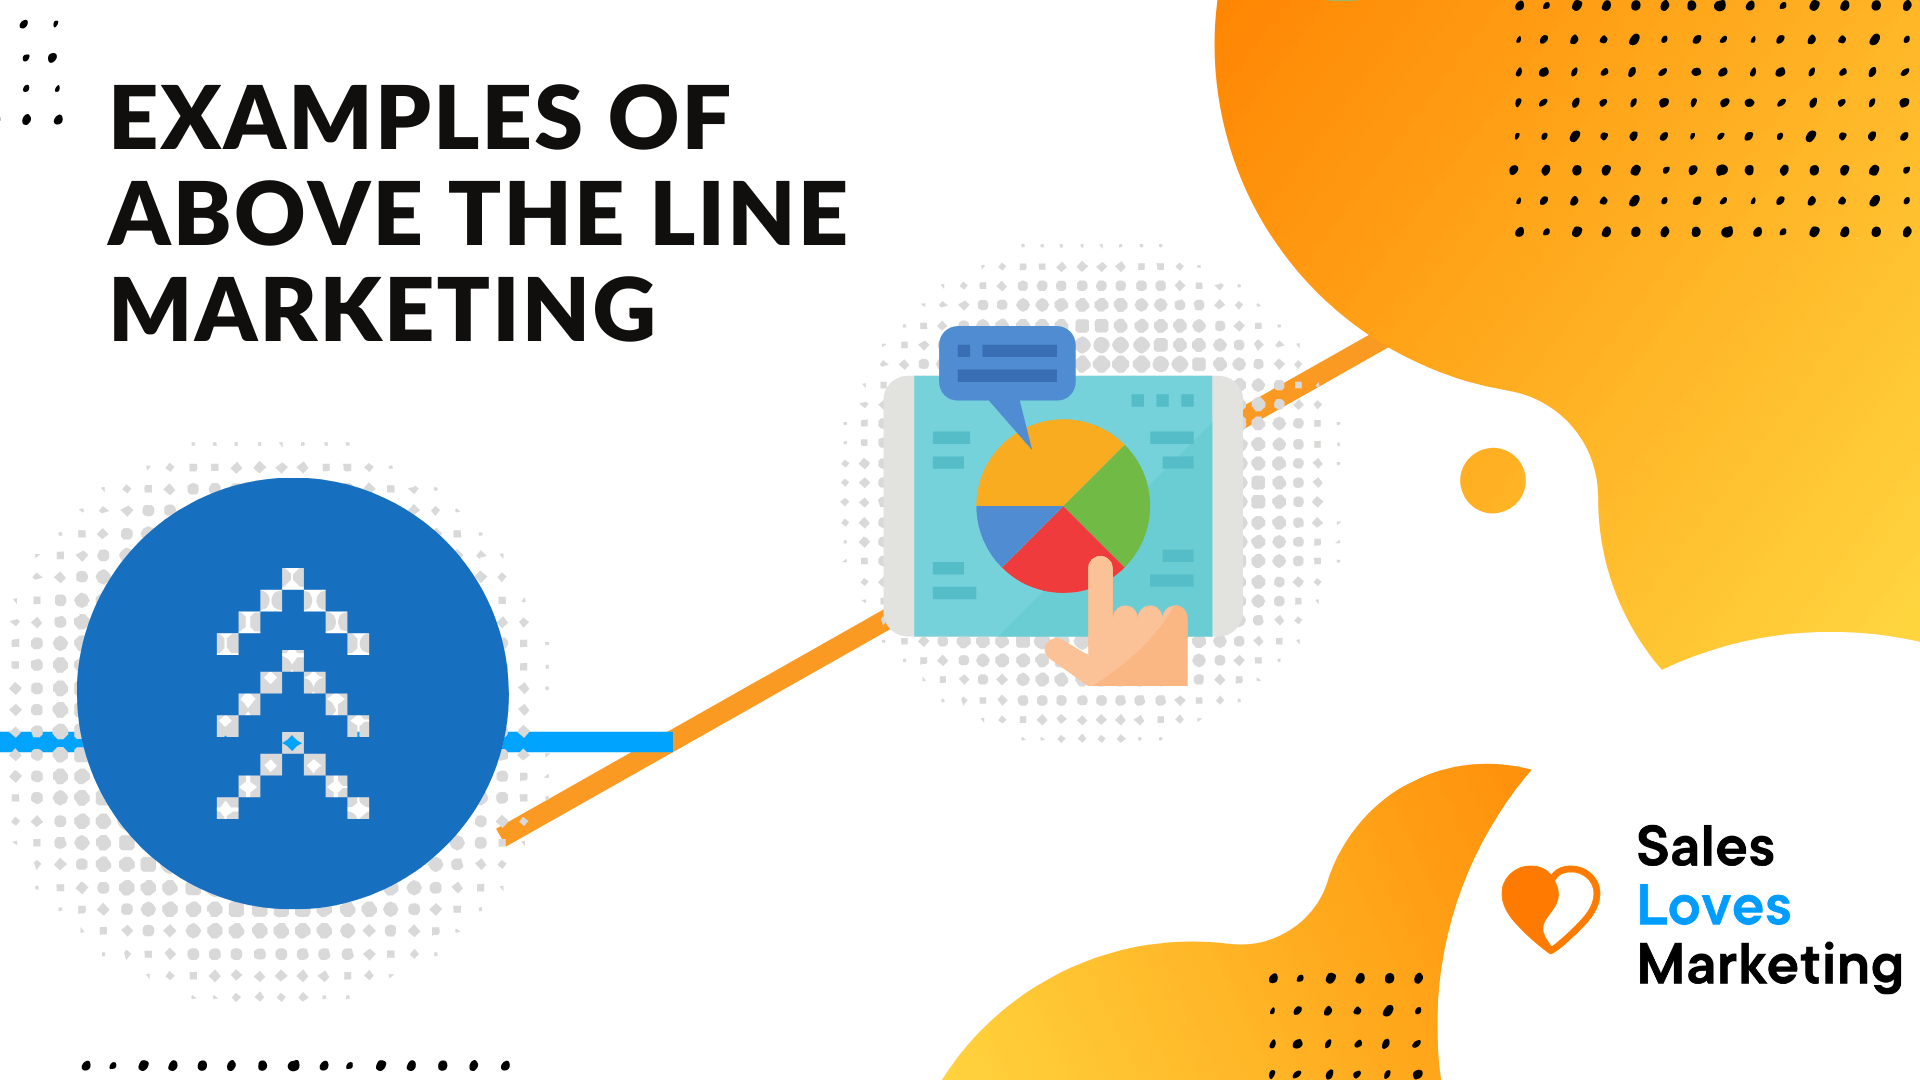 Above the line marketing examples and how you can use it for your business